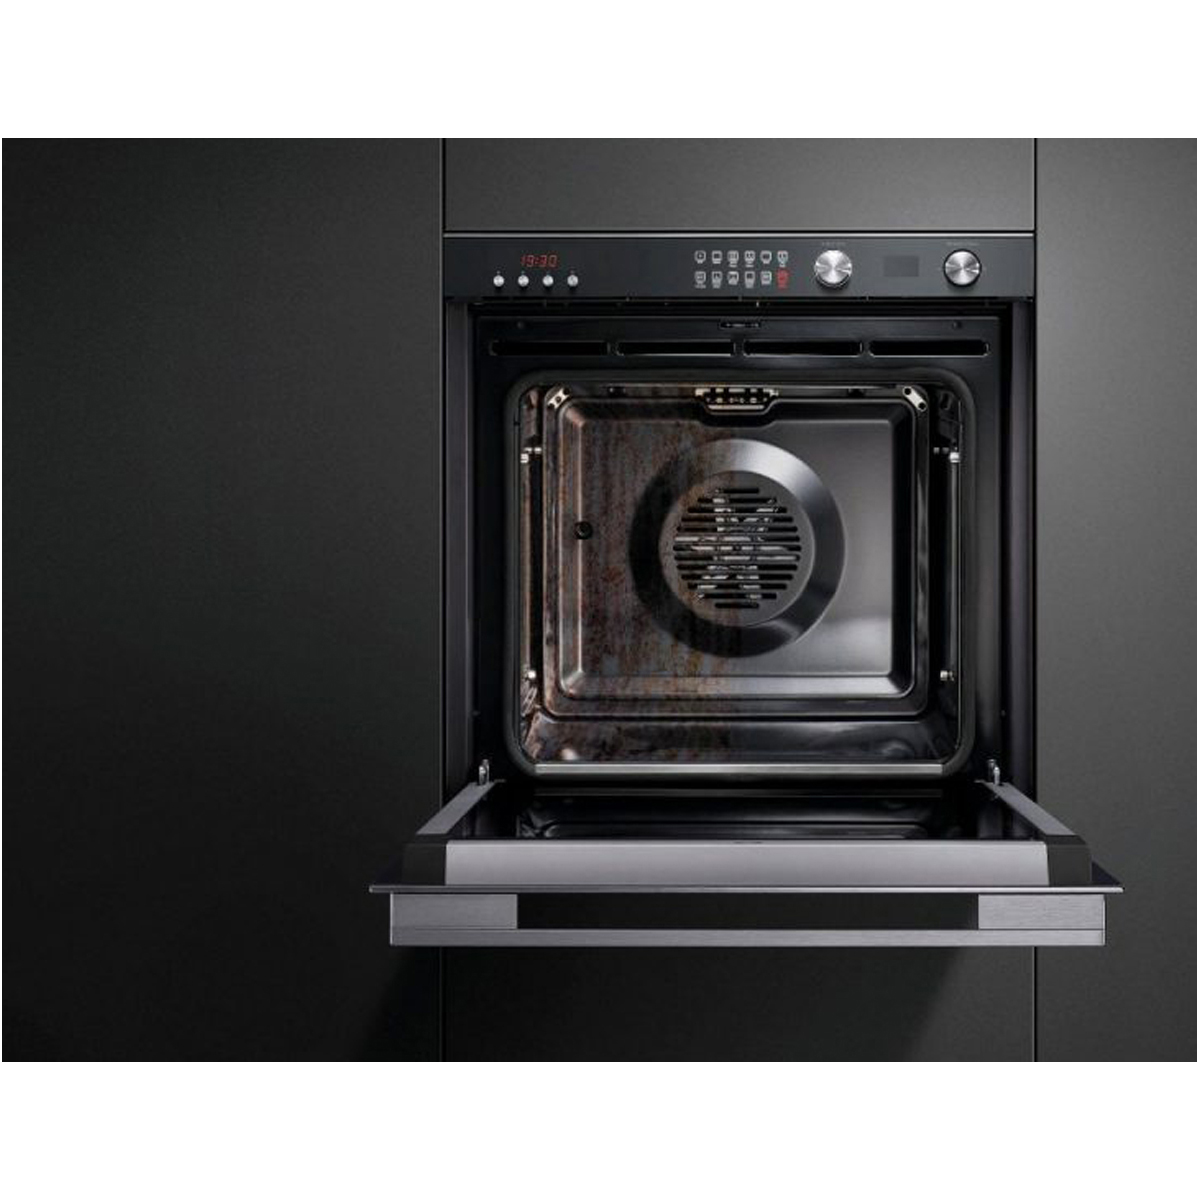 Fisher & Paykel OB60SL11DEPB1 Pyrolytic Oven 46881